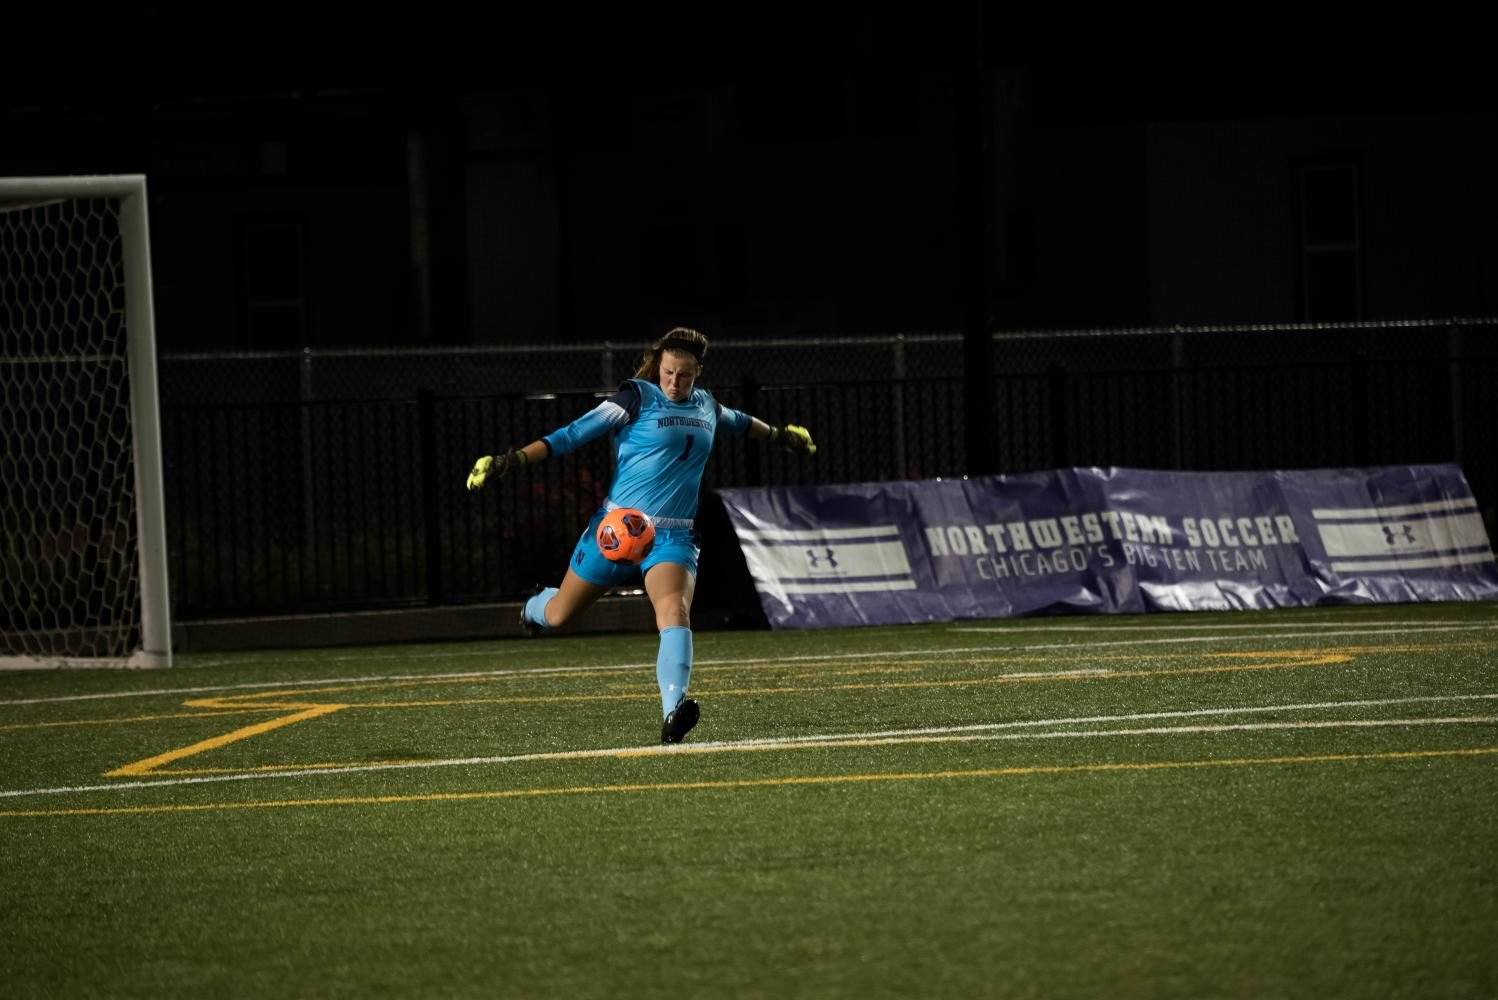 Lauren Clem kicks the ball upfield. Through just five games, the senior goalkeeper has already allowed more goals than she did all of last year's regular season.